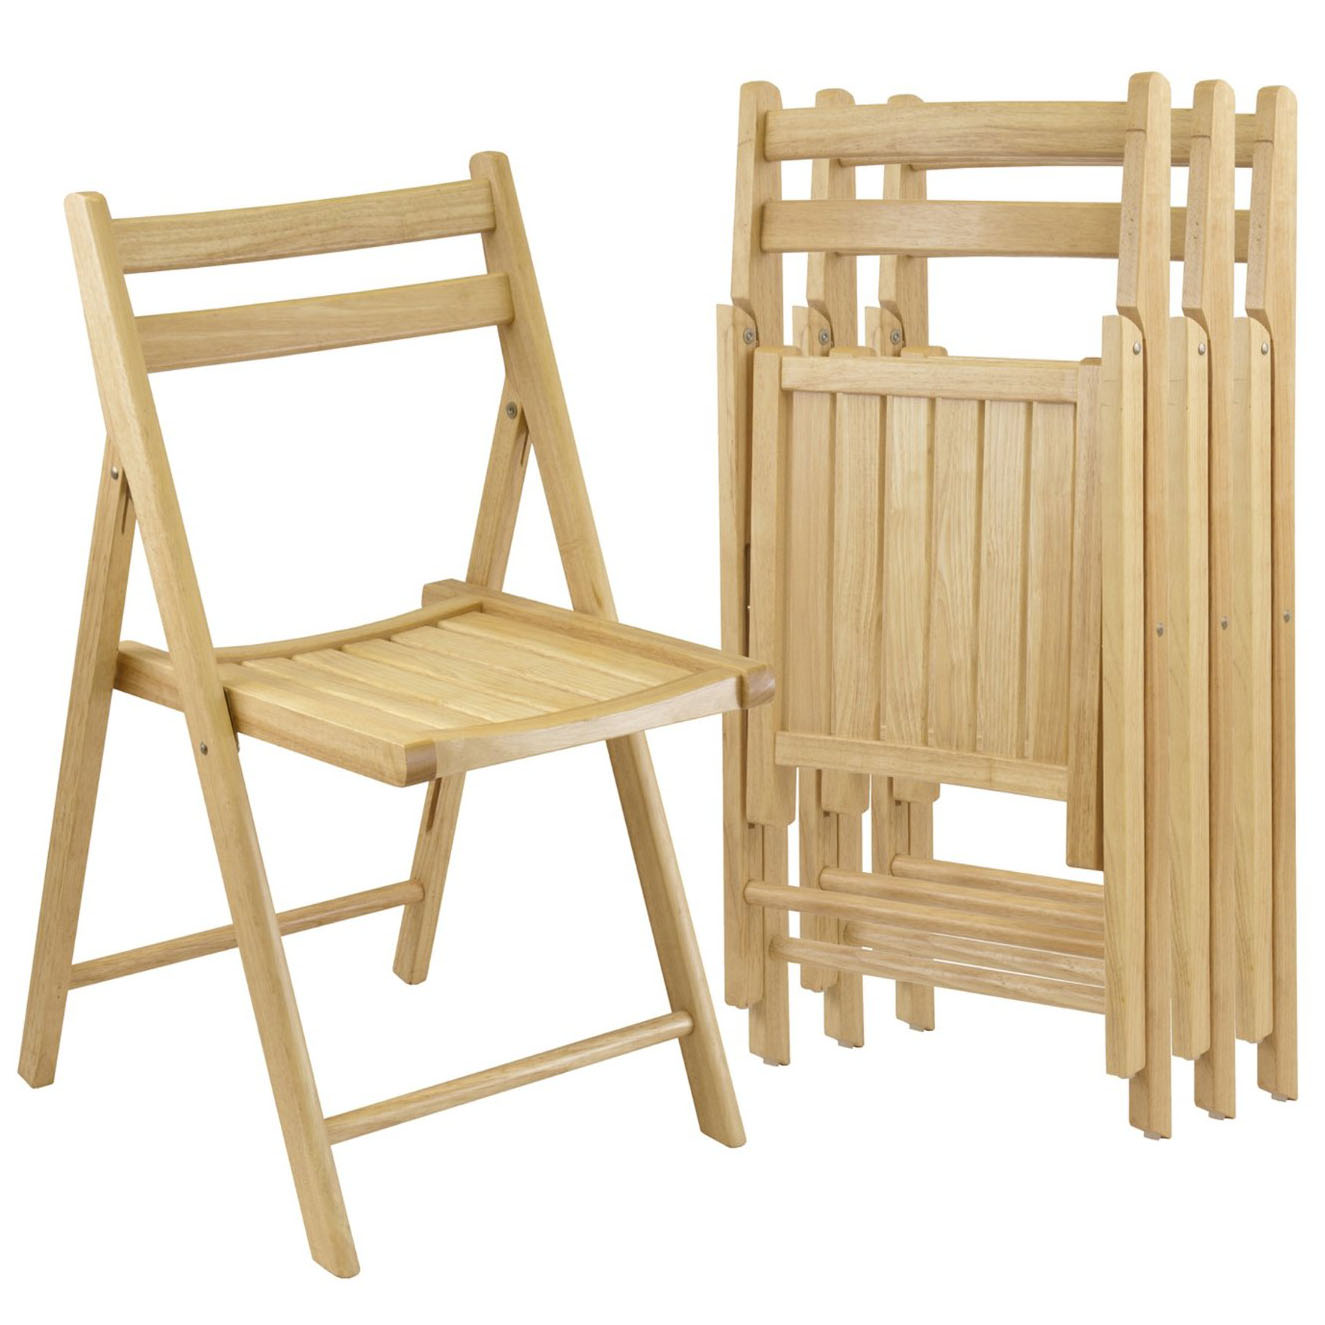 Wood folding chair outdoor - Wood Folding Chairs